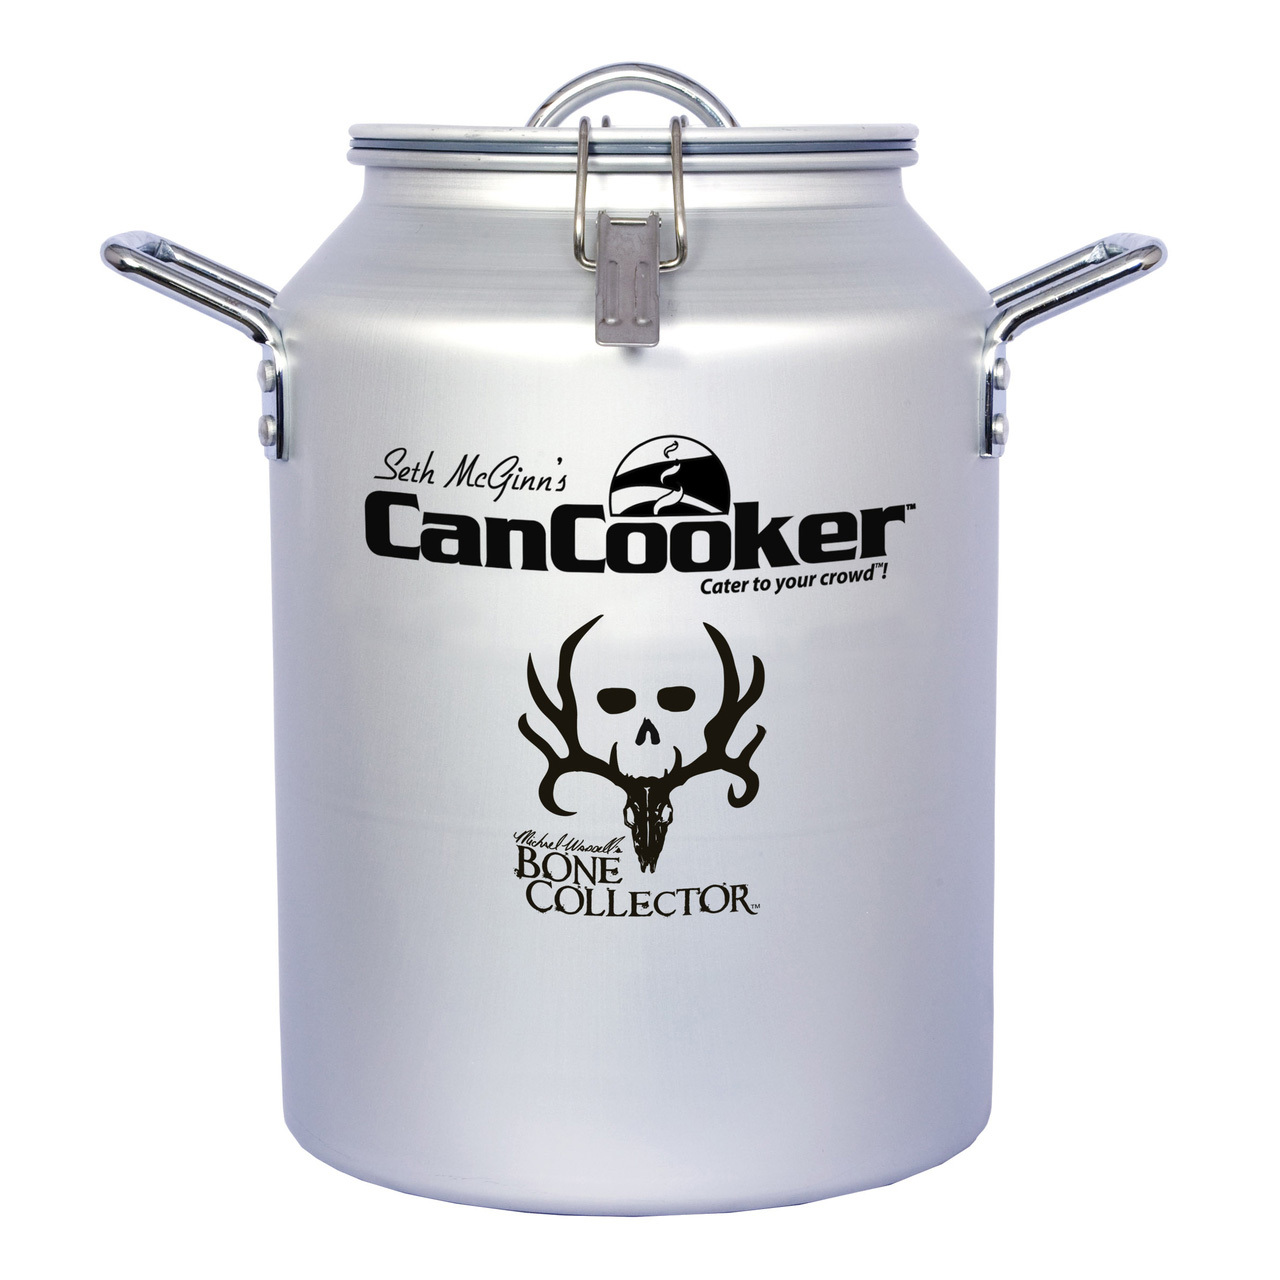 CANCOOKER BONE COLLECTOR